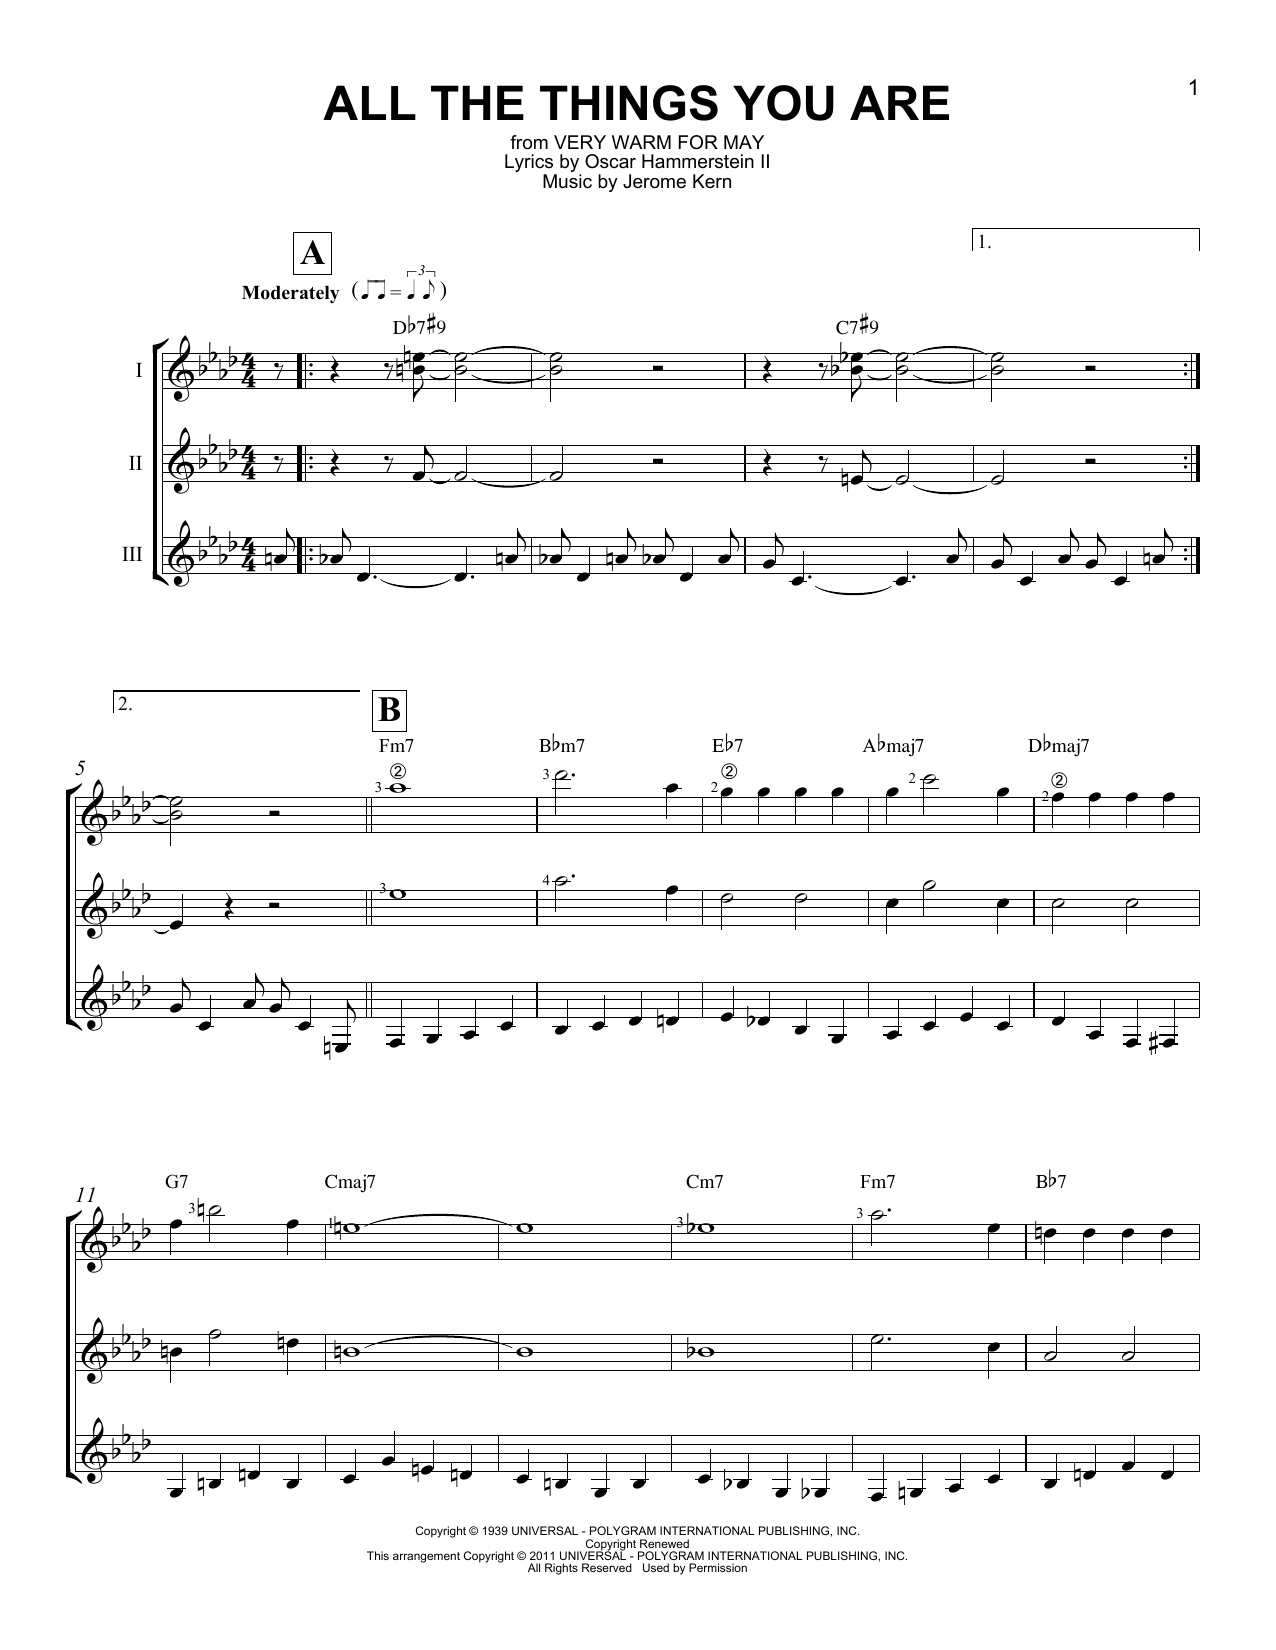 Sheet music digital files to print licensed broadway digital sheet music digital files to print licensed broadway digital sheet music hexwebz Choice Image